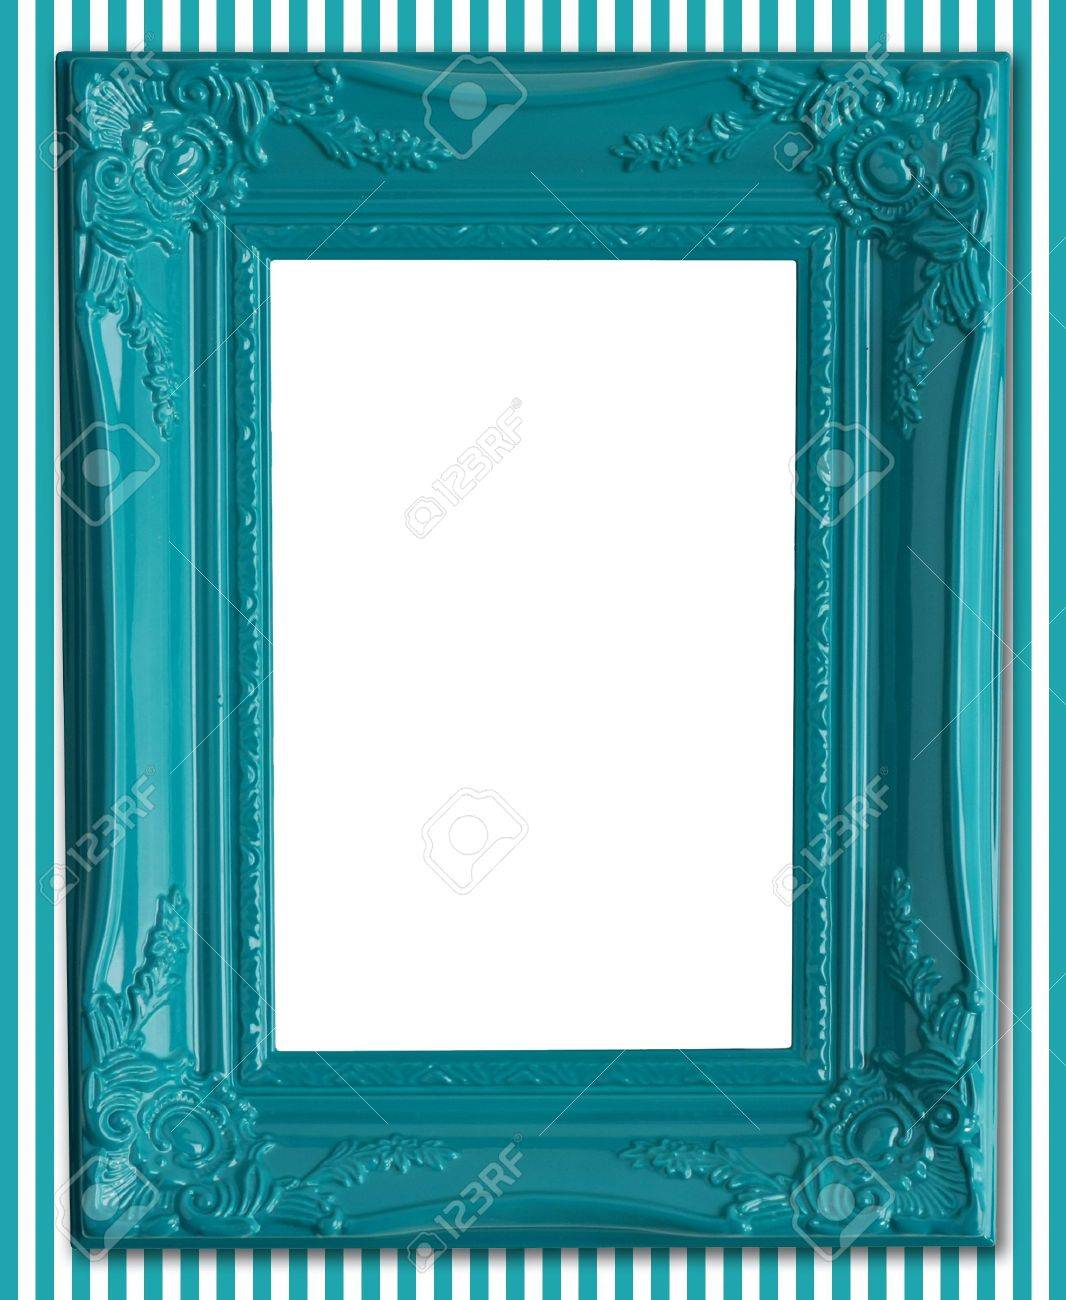 contemporary blue picture frame on a striped wallpaper background  - contemporary blue picture frame on a striped wallpaper background stockphoto